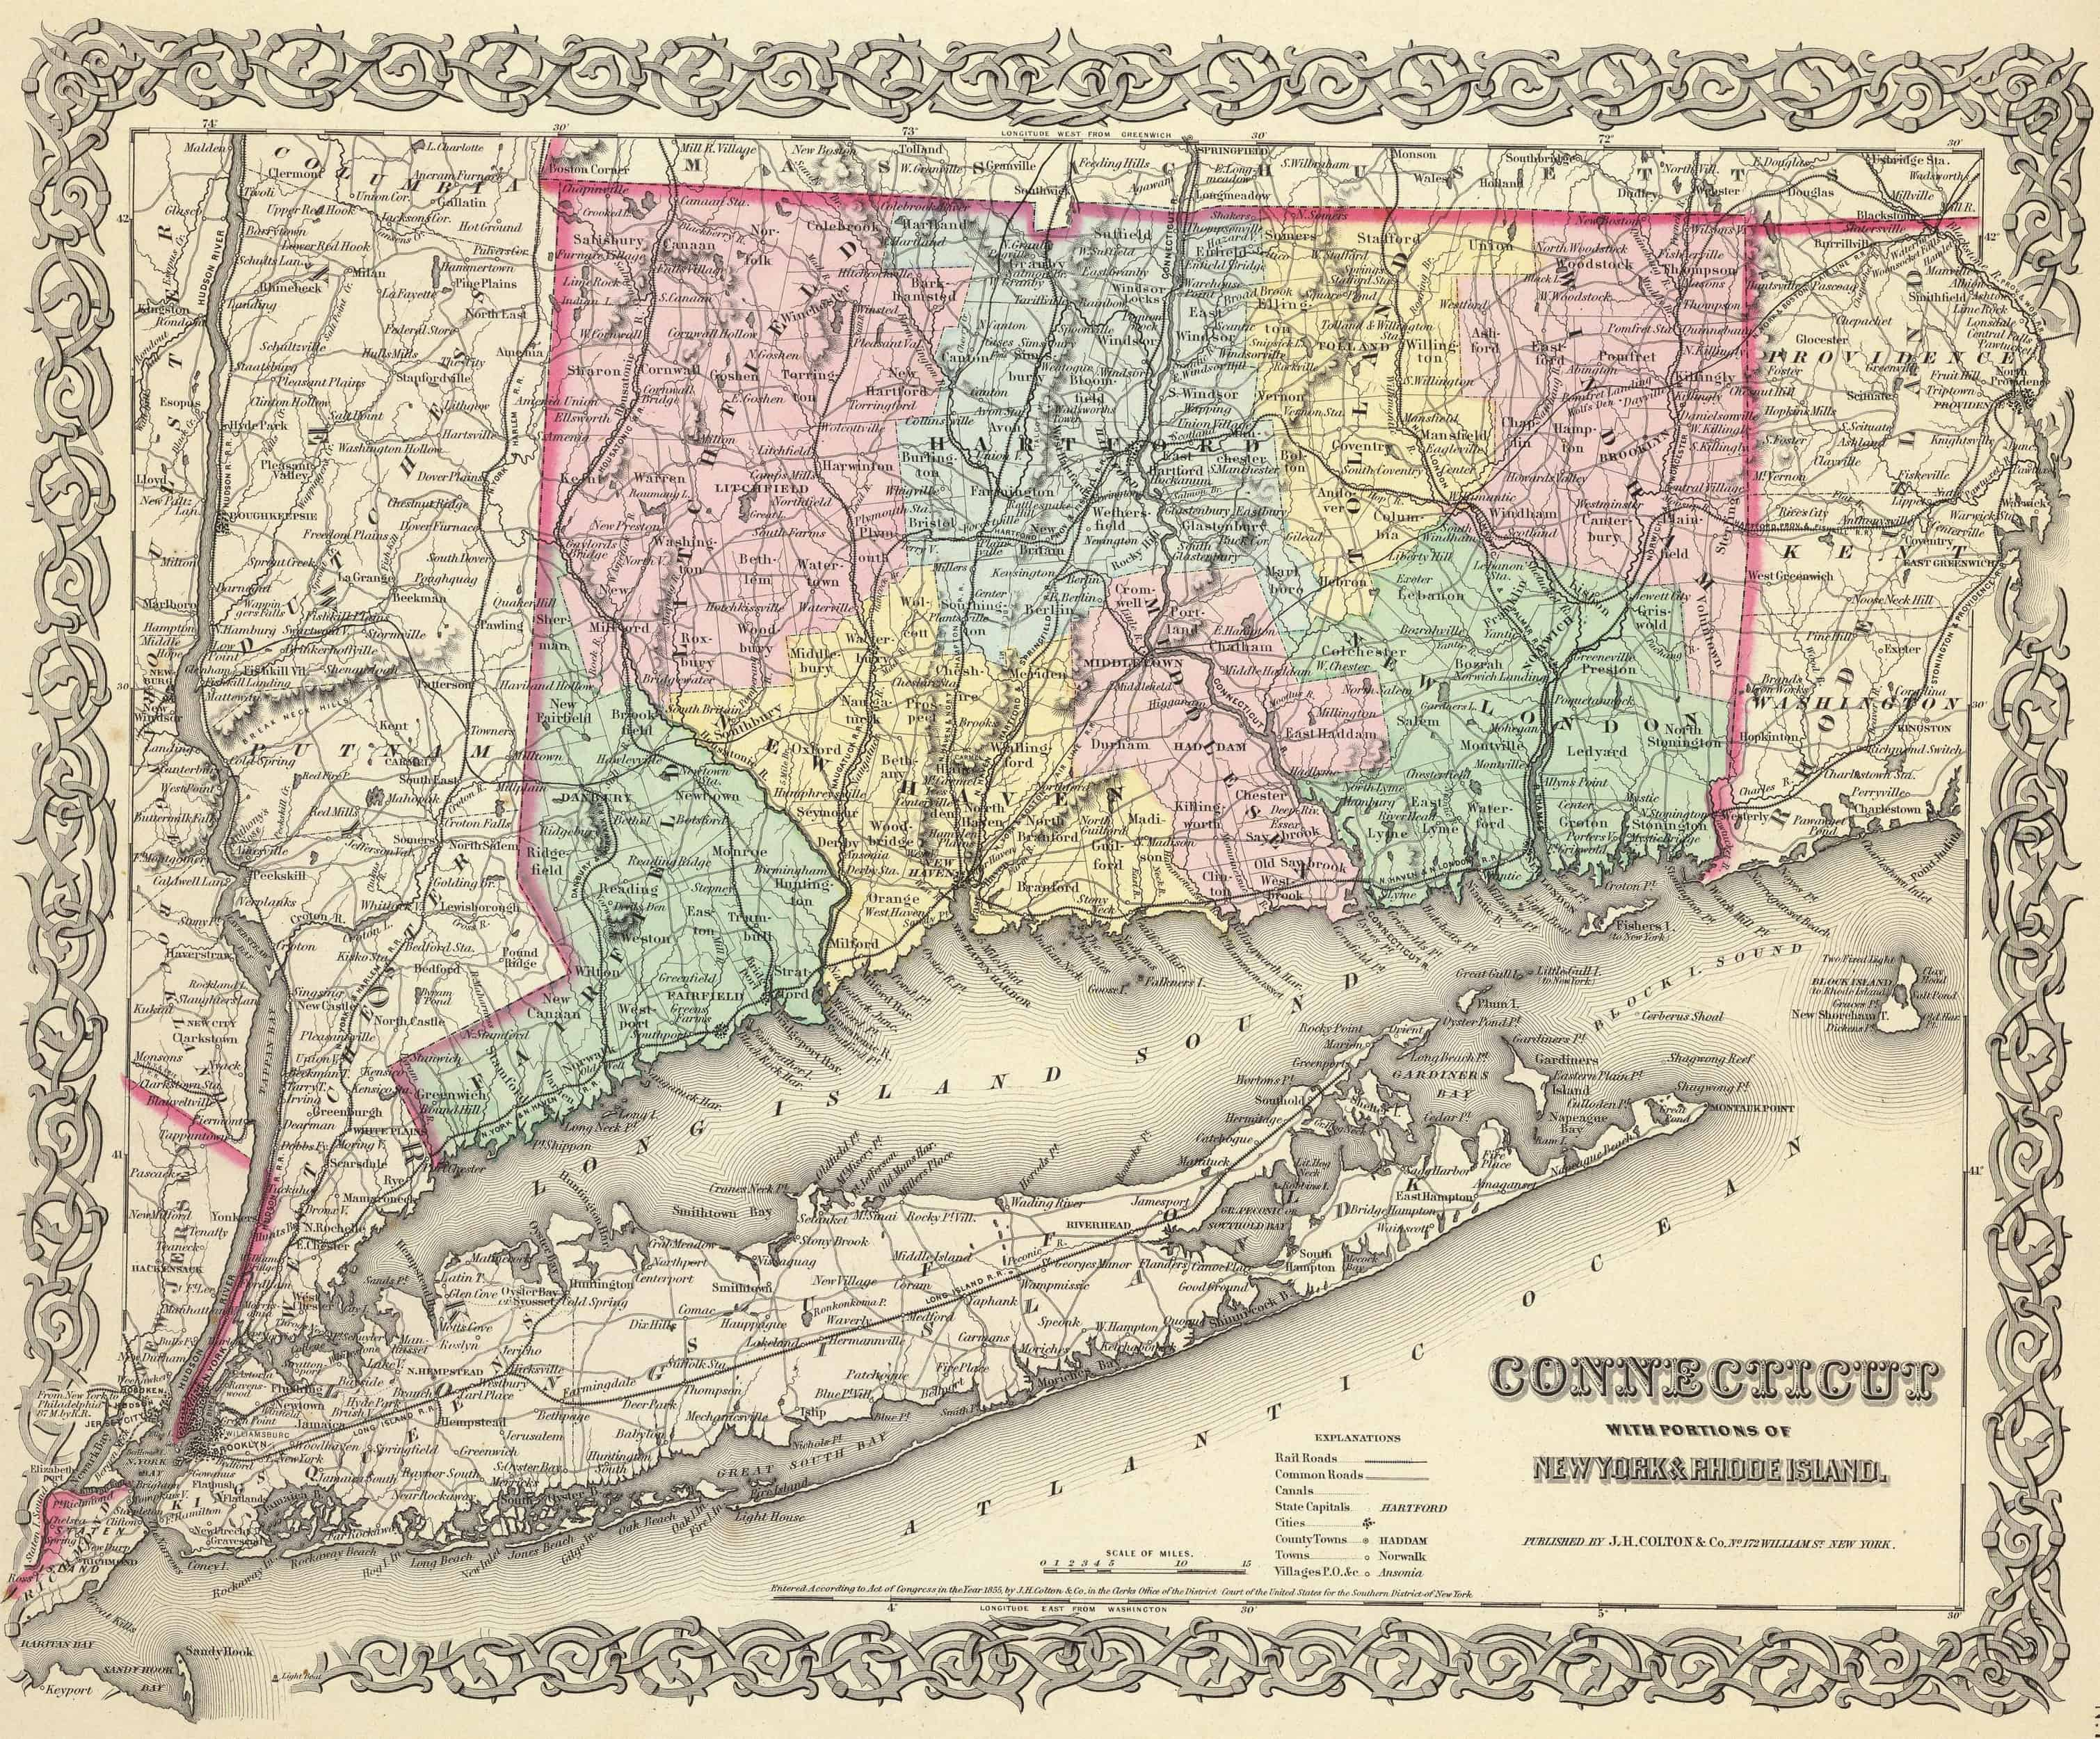 Old Historical City, County and State Maps of Connecticut on map of colchester ct, map of vernon rockville ct, map of southington ct, map of union ct, map of carolina pr, map of thompsonville ct, map of long island sound ct, map of connecticut, map of state of ct, map of windsor ct, map of north granby ct, map of mohegan sun ct, map of north haven ct, map of hamburg ct, map of wauregan ct, map of boston ct, map of stonington borough ct, map of webster ct, map of gaylordsville ct, map of woodbridge ct,